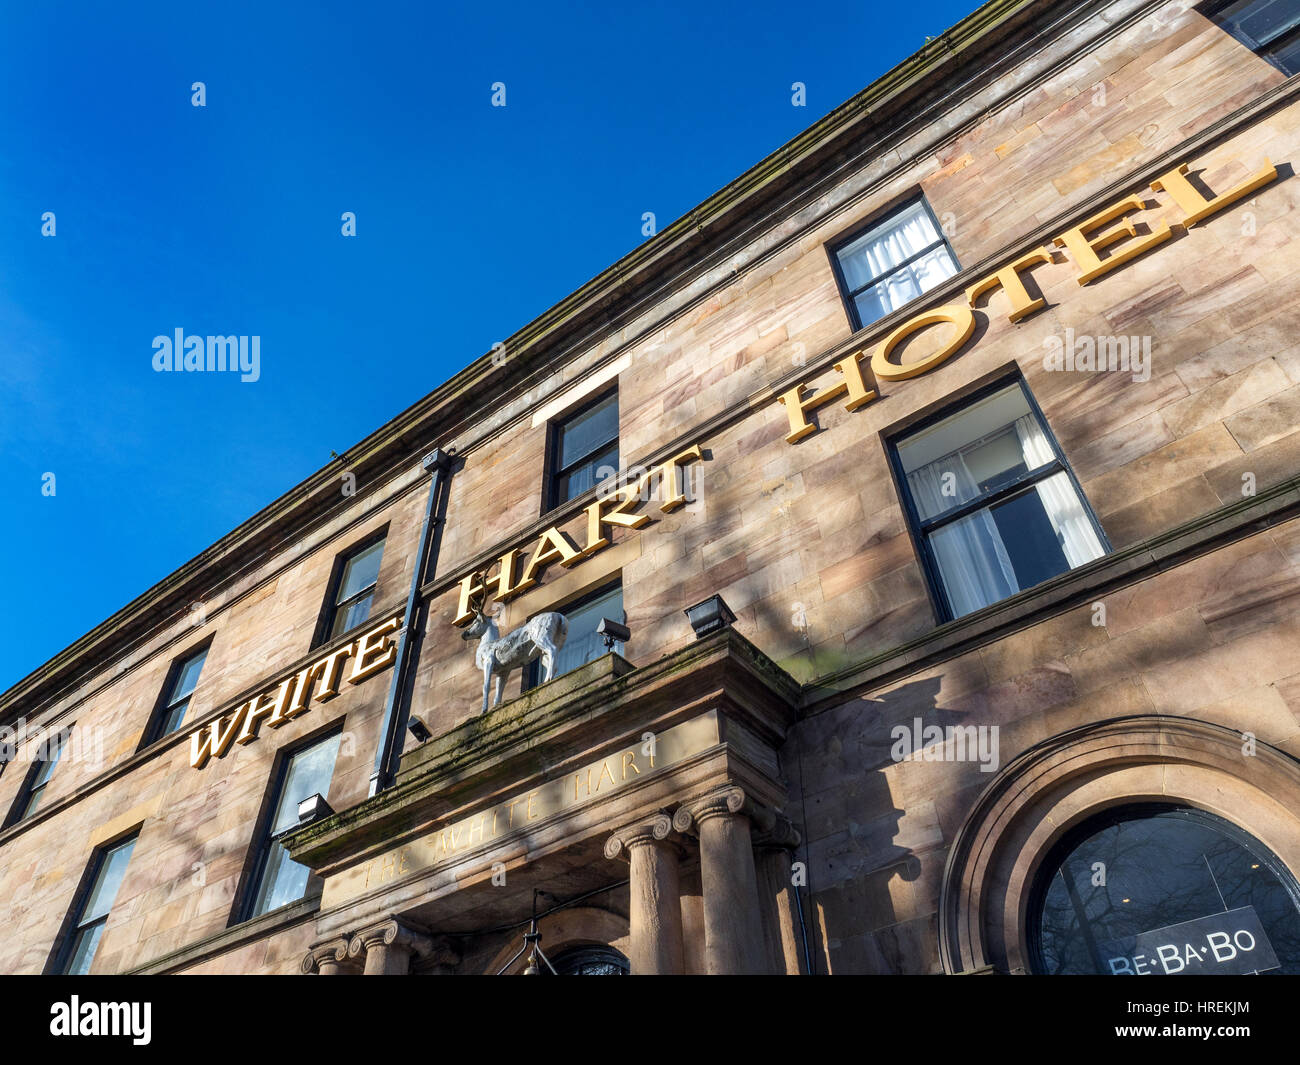 The White Hart Hotel and Conference Centre on Cold Bath Road in Harrogate North Yorkshire England - Stock Image